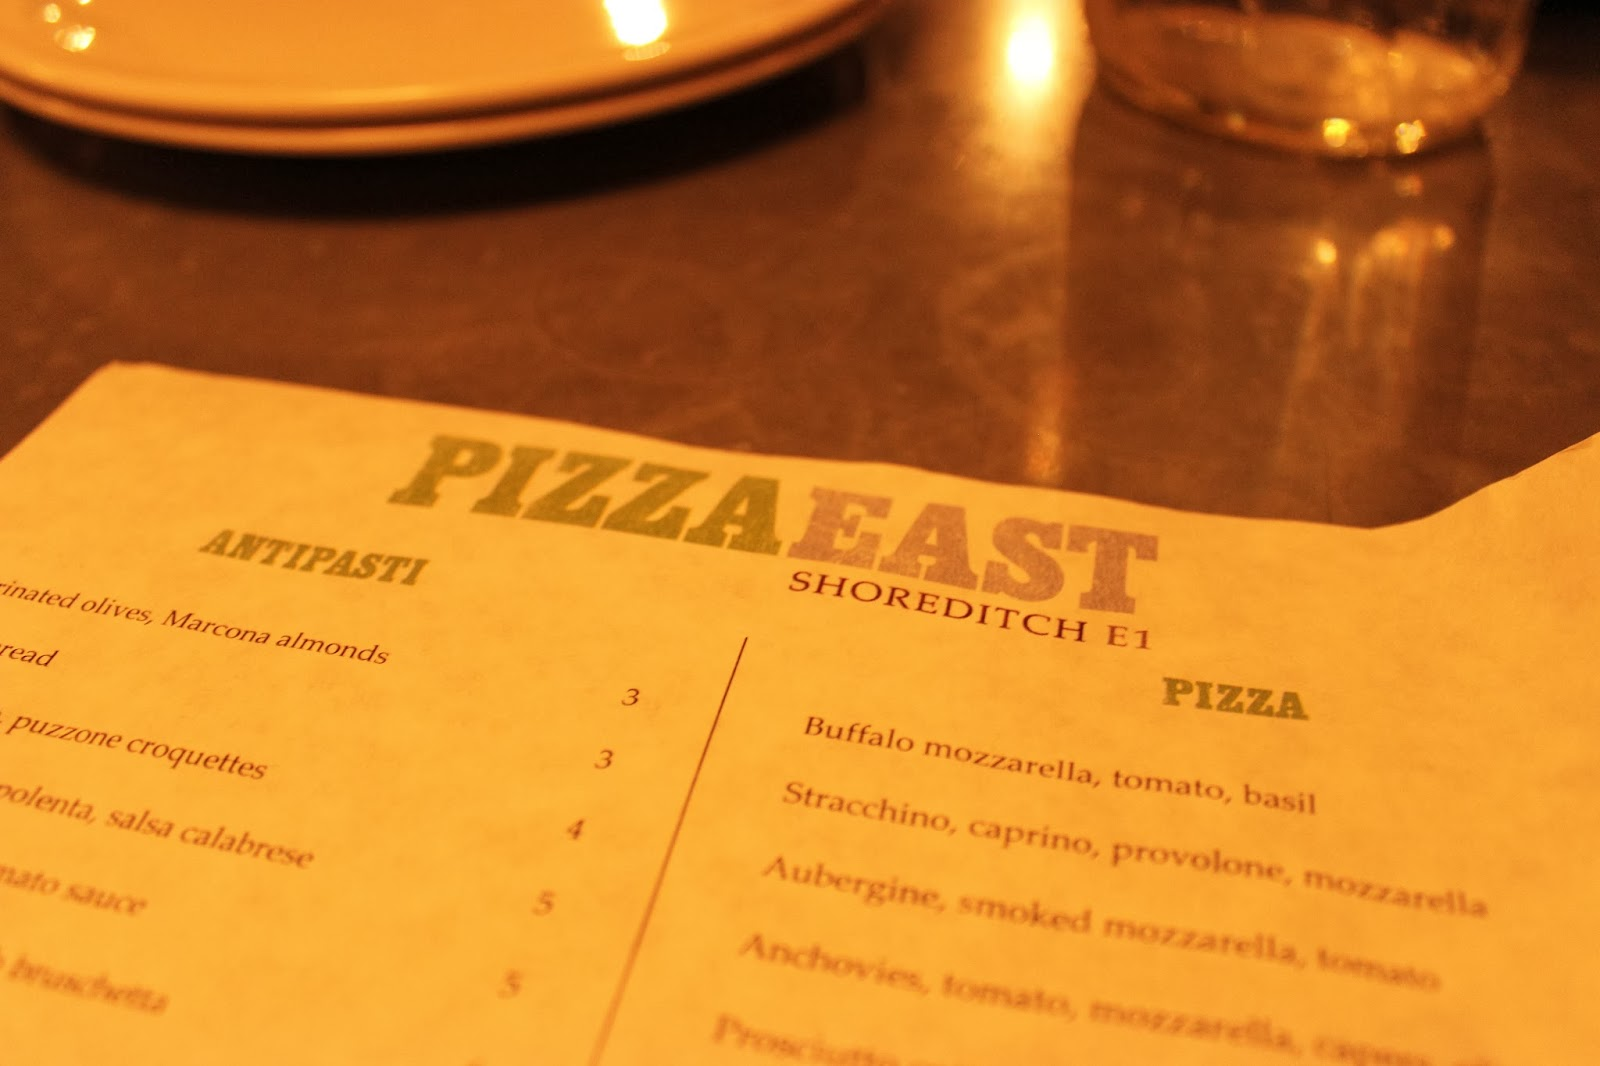 Pizza East, Shorditch, London, East London, Food, Pizza, Italian, Central London, That Guy Luke, Blog